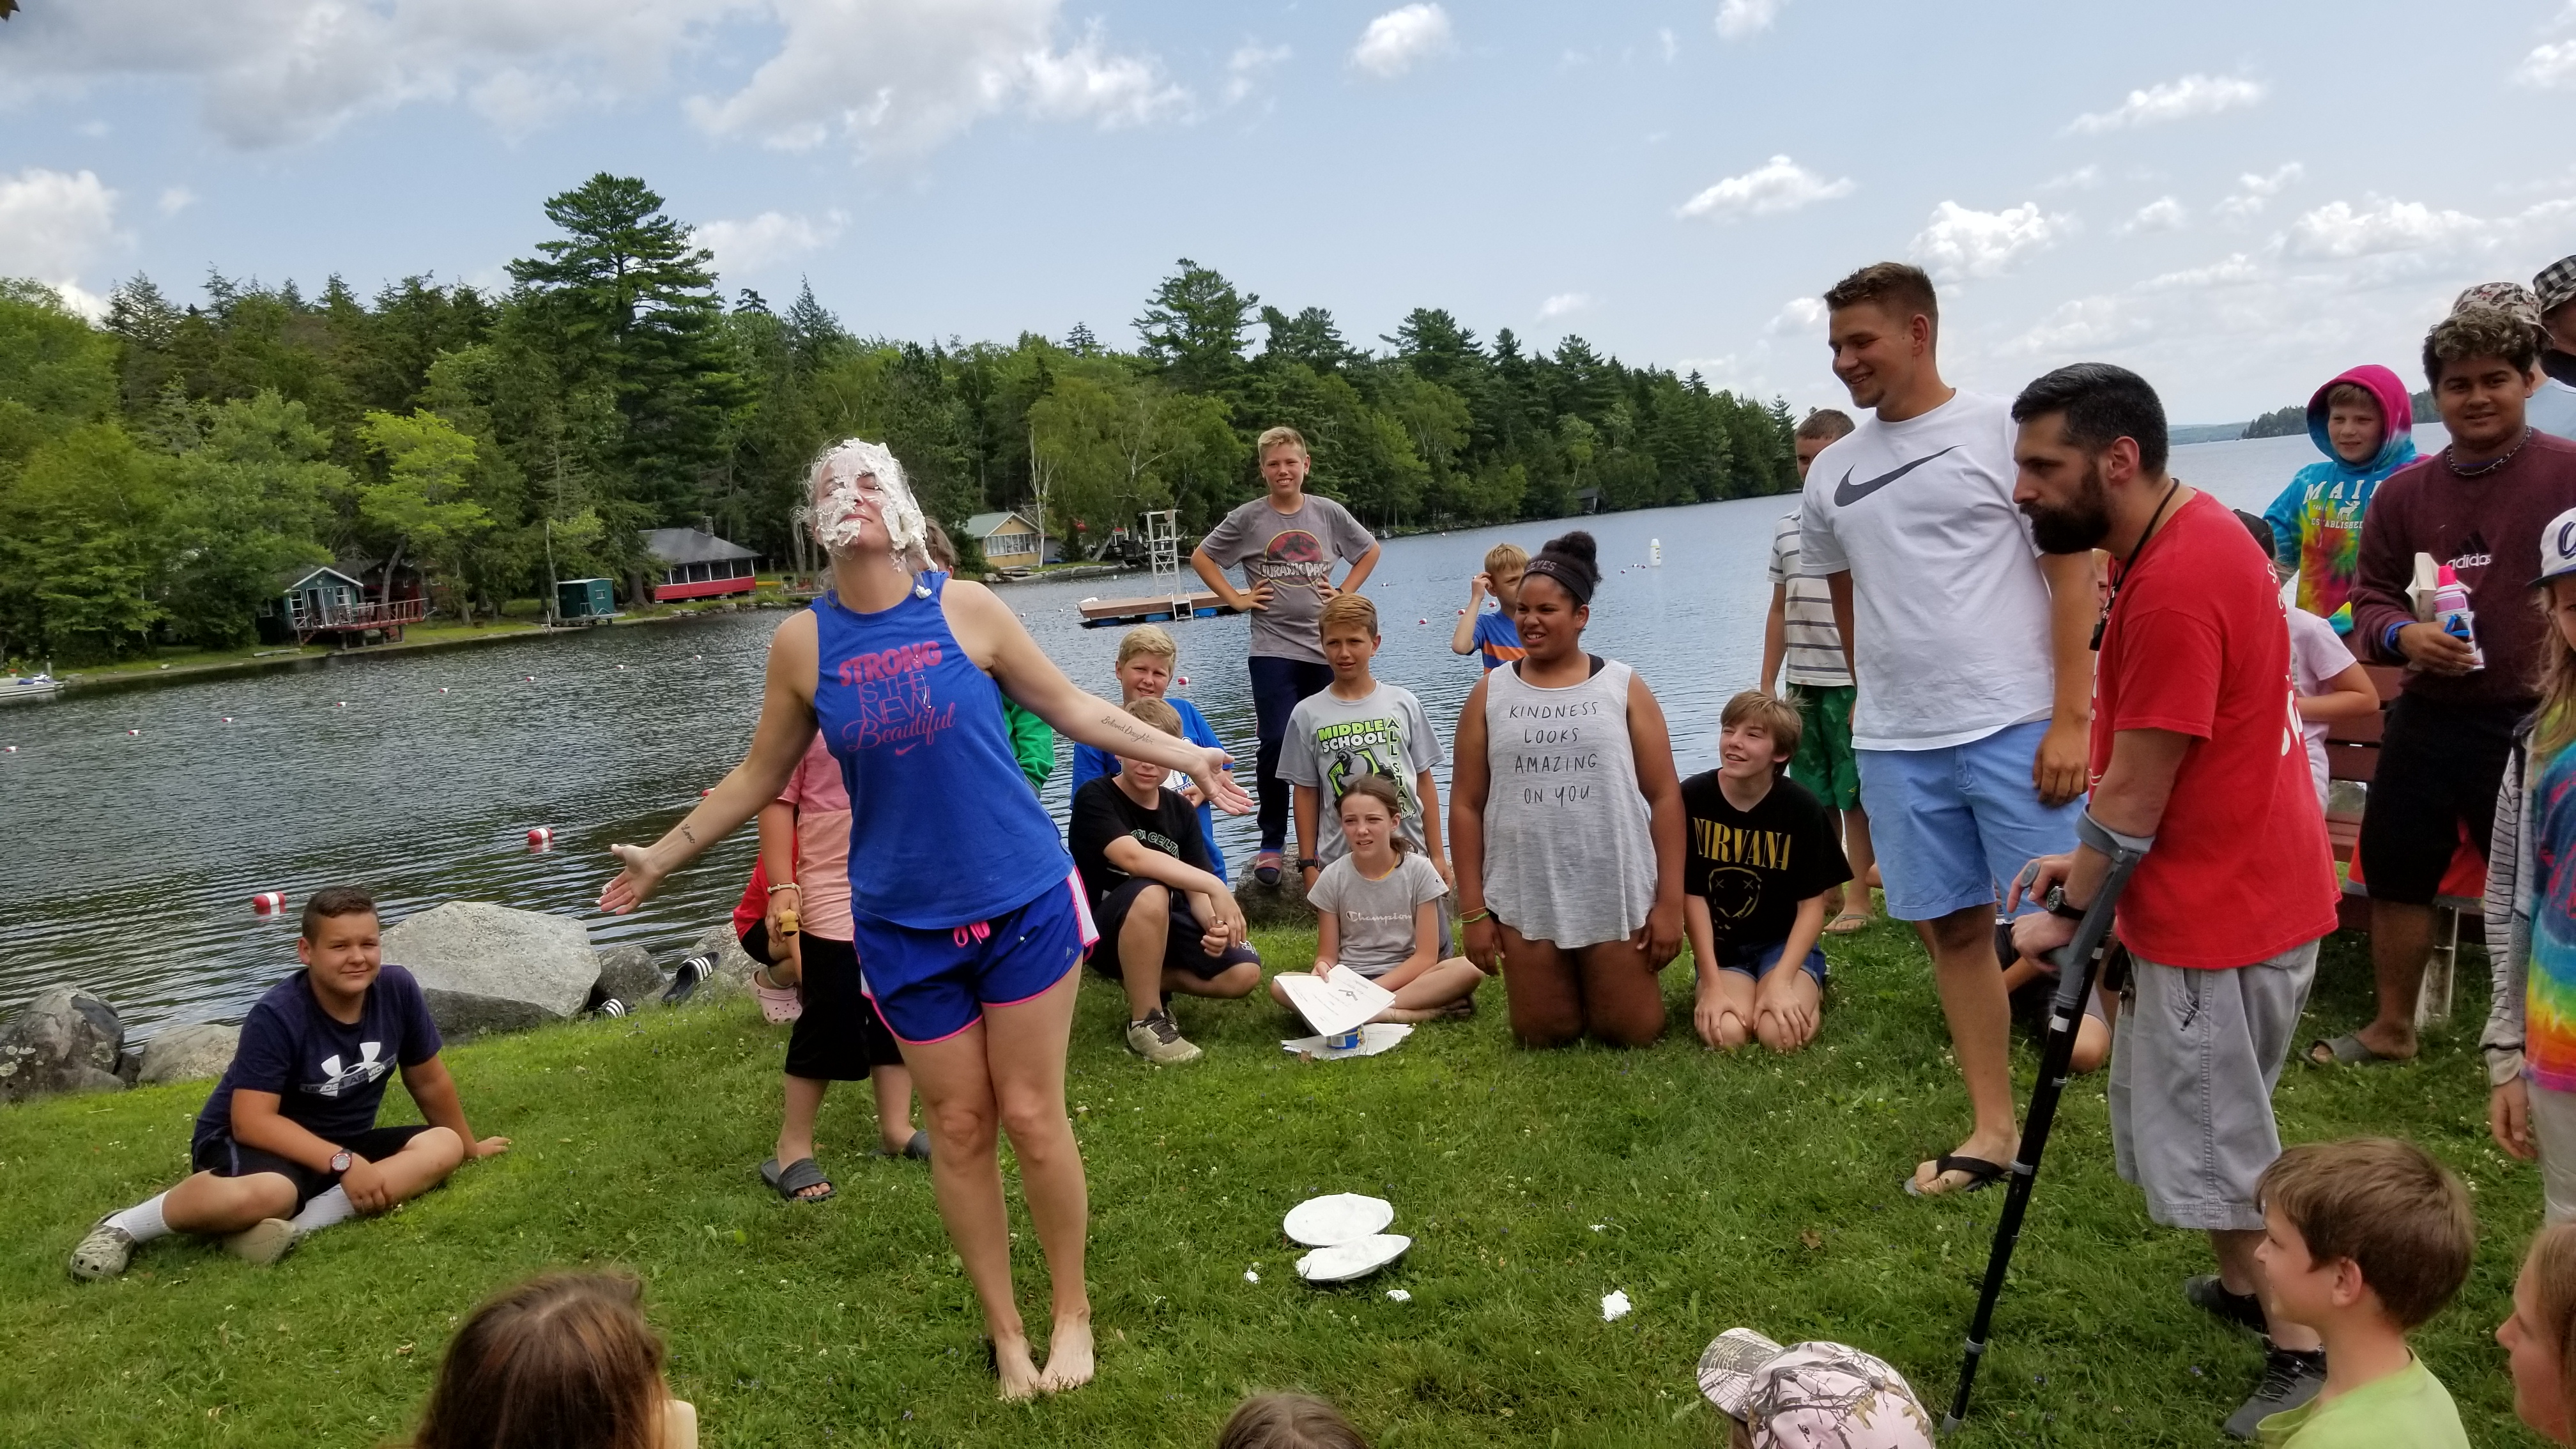 The Campers competed against each other all week, and the winning team got to decide which Camp Staff has to get a pie in the face. Shawna won (or lost - depending on how you look at it.) But Shawna was a good sport about it!